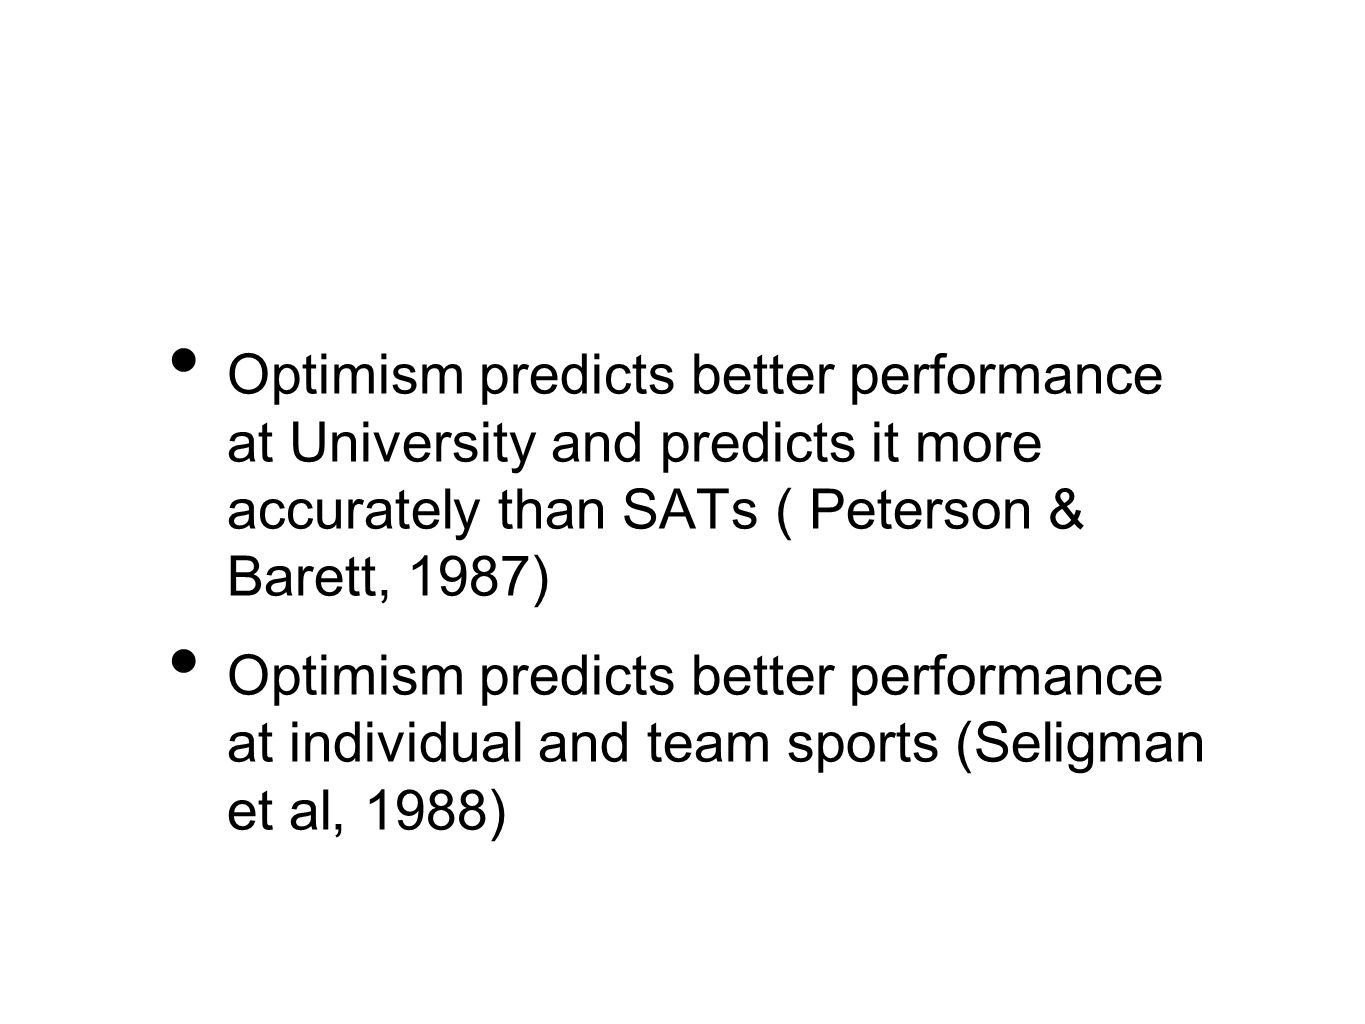 Optimism predicts better performance at University and predicts it more accurately than SATs ( Peterson & Barett, 1987) Optimism predicts better performance at individual and team sports (Seligman et al, 1988)